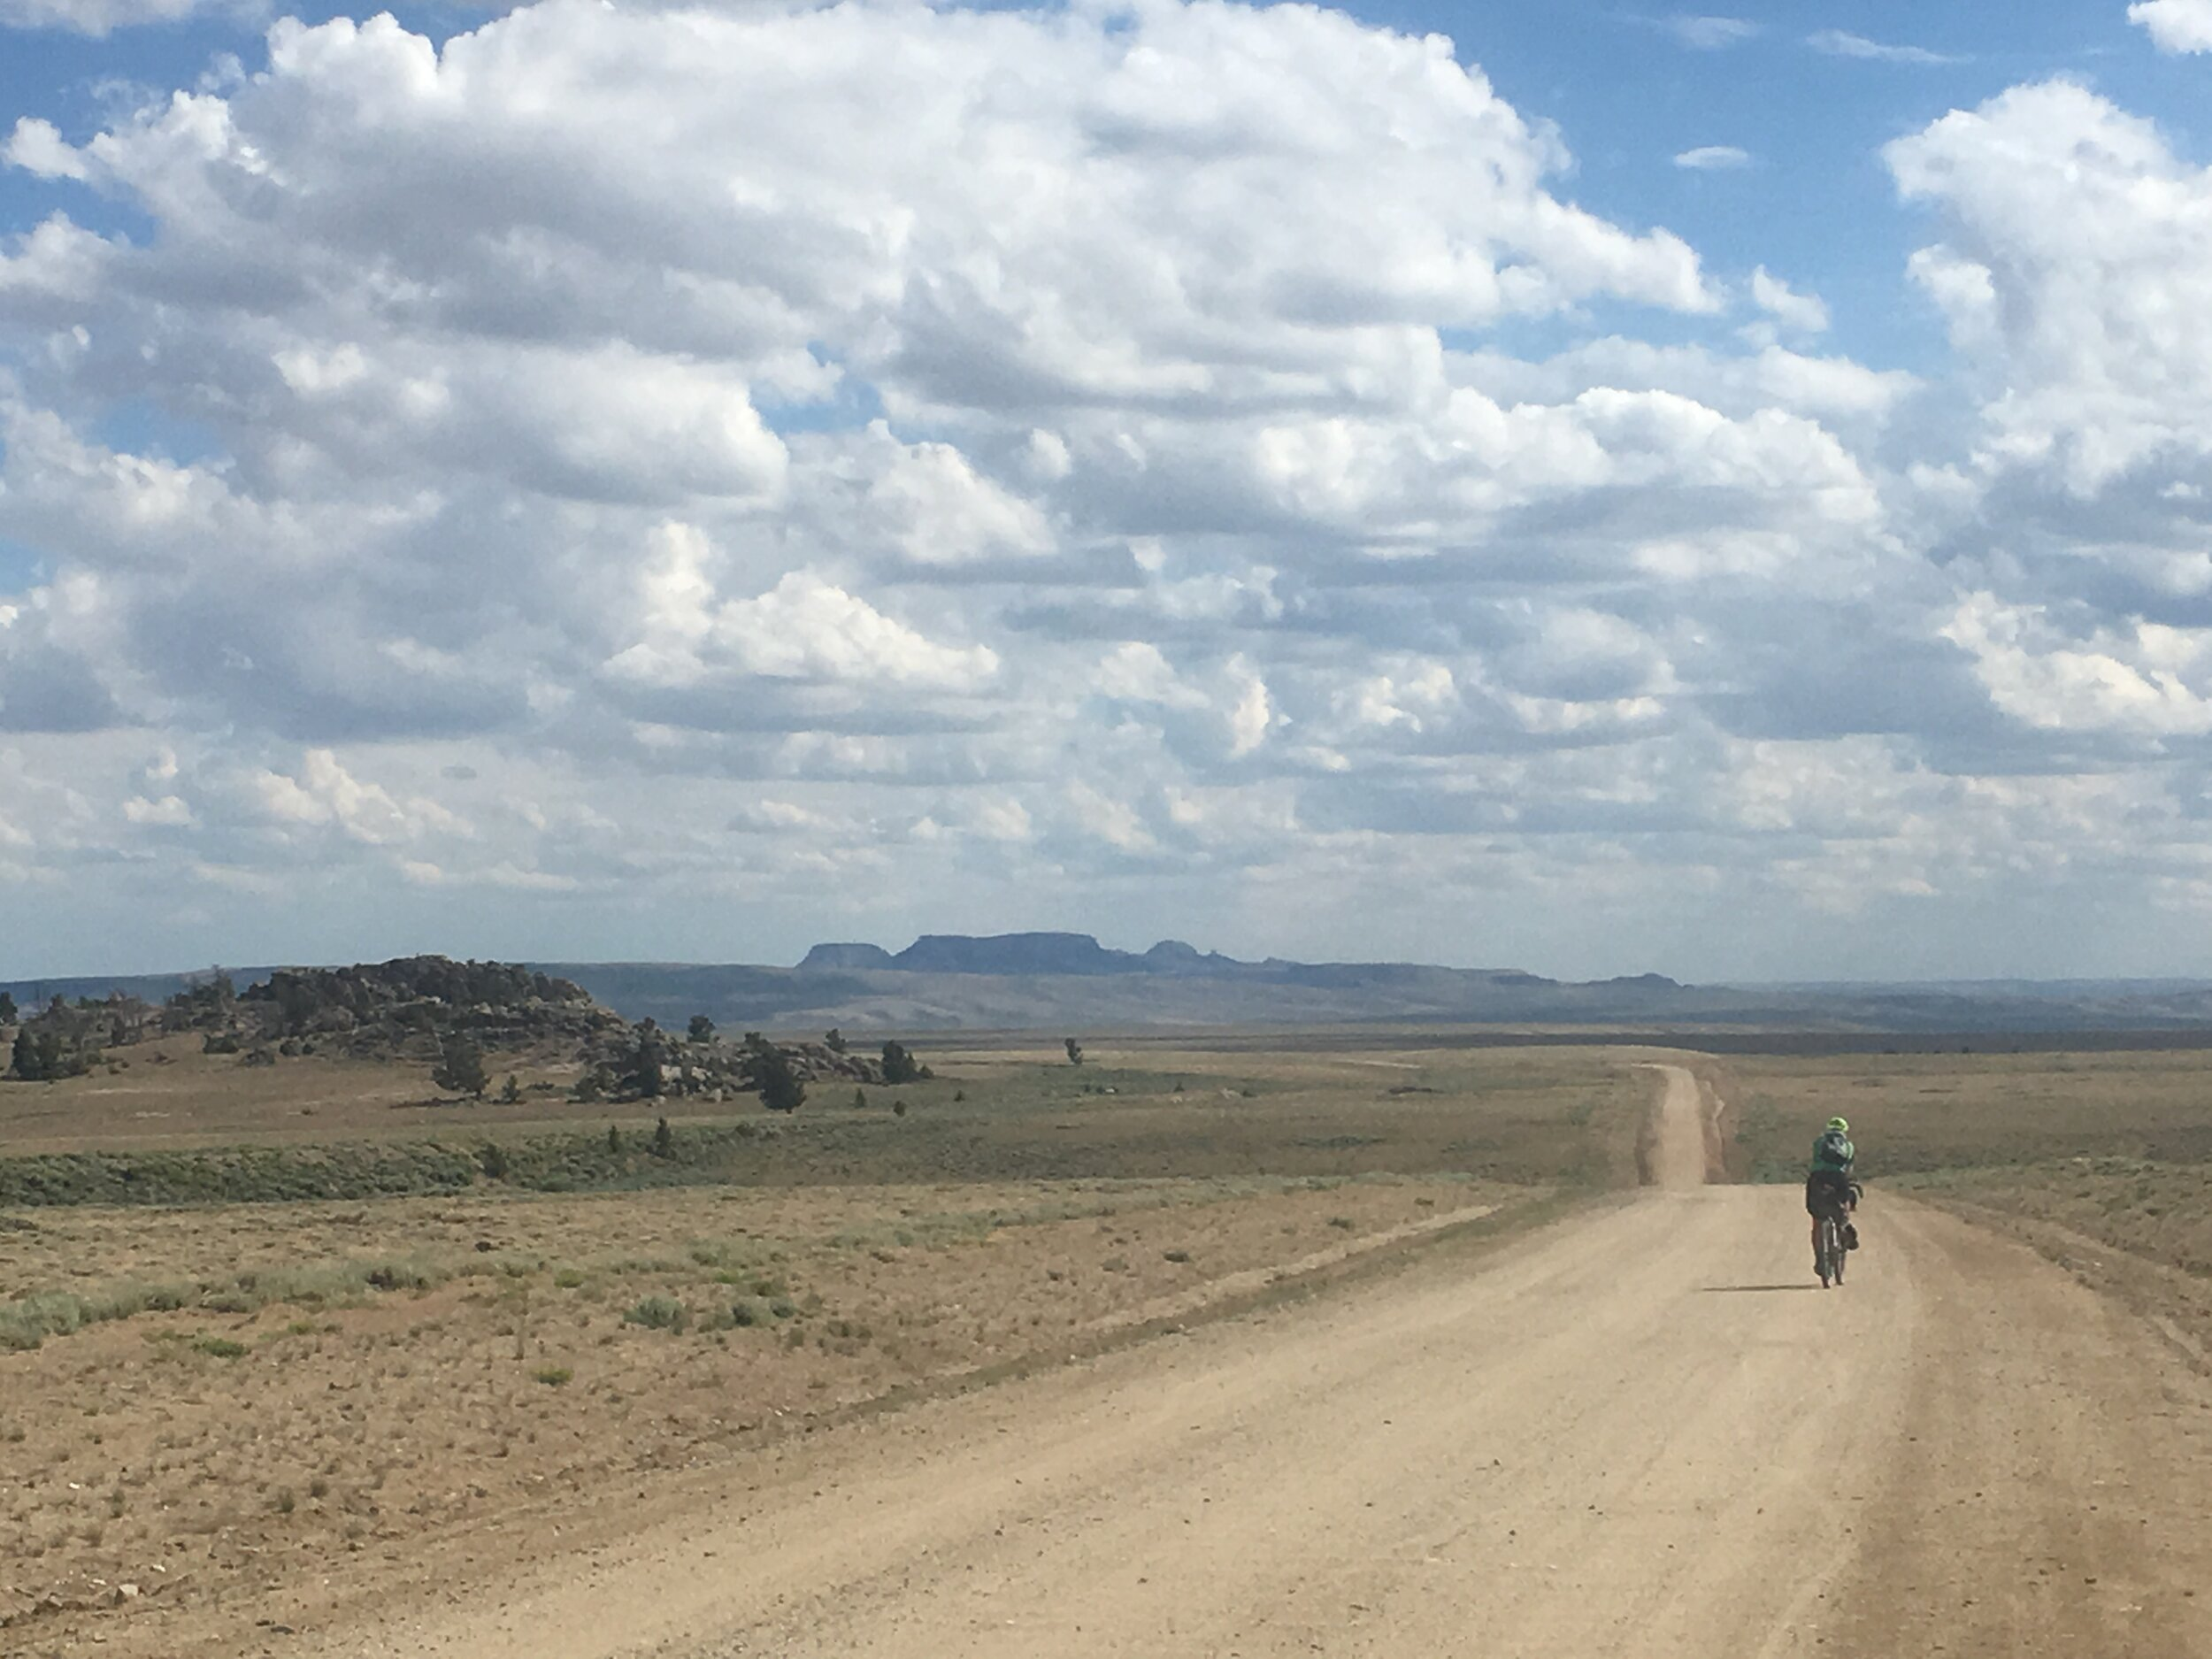 Making miles on the Continental Divide trail on the edge of the Great Divide Basin